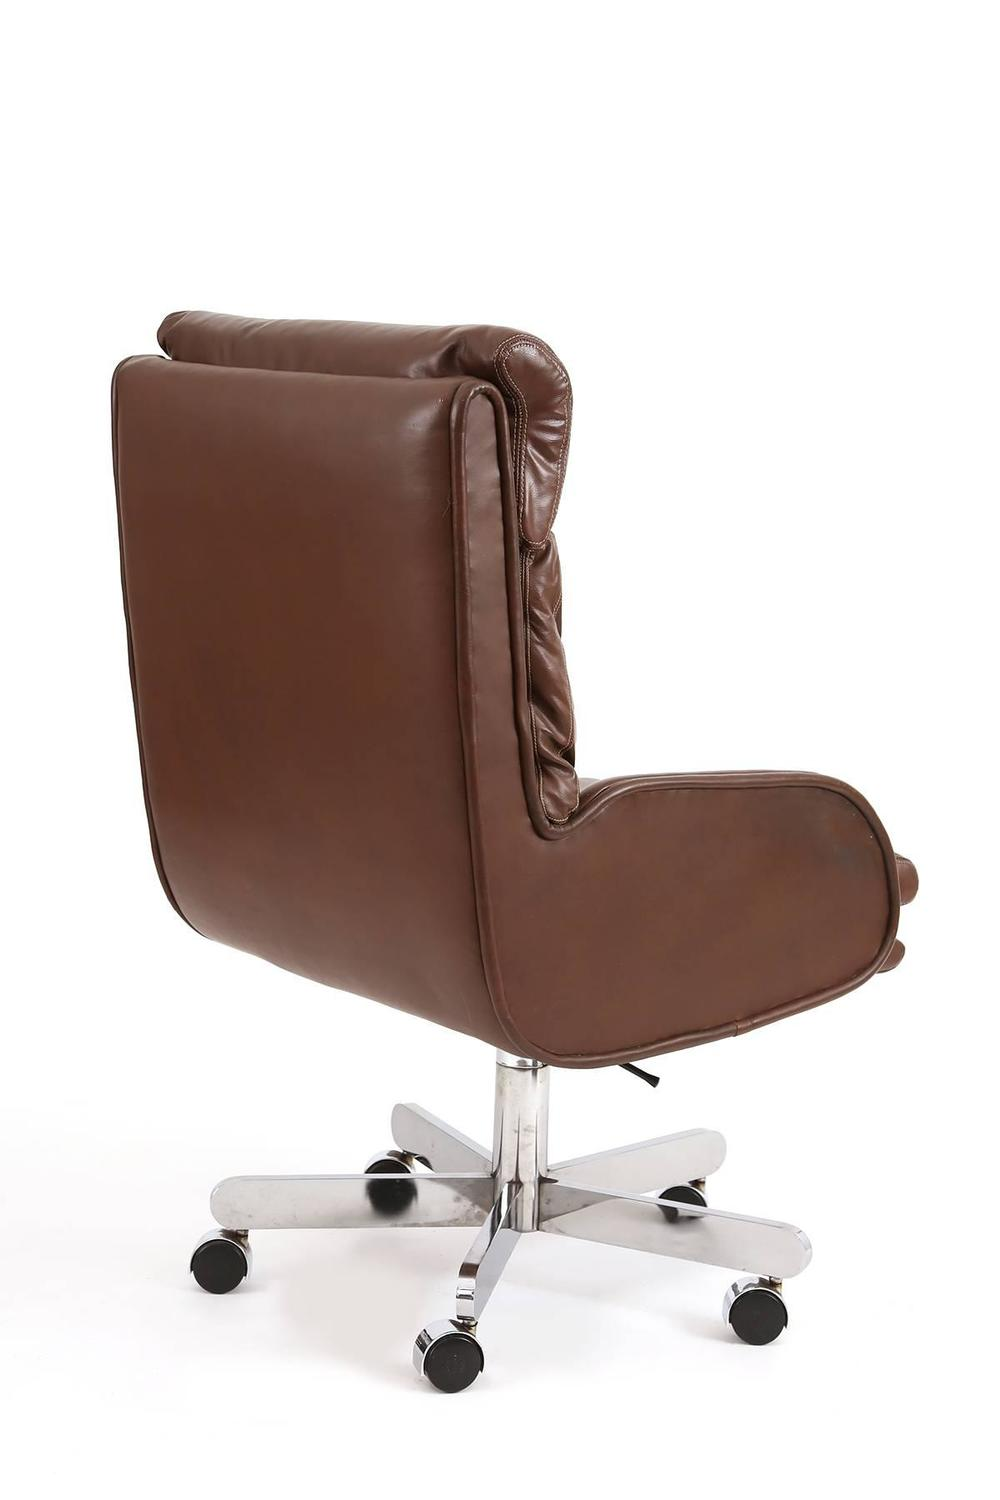 roger sprunger for dunbar leather and chrome office chair at 1stdibs